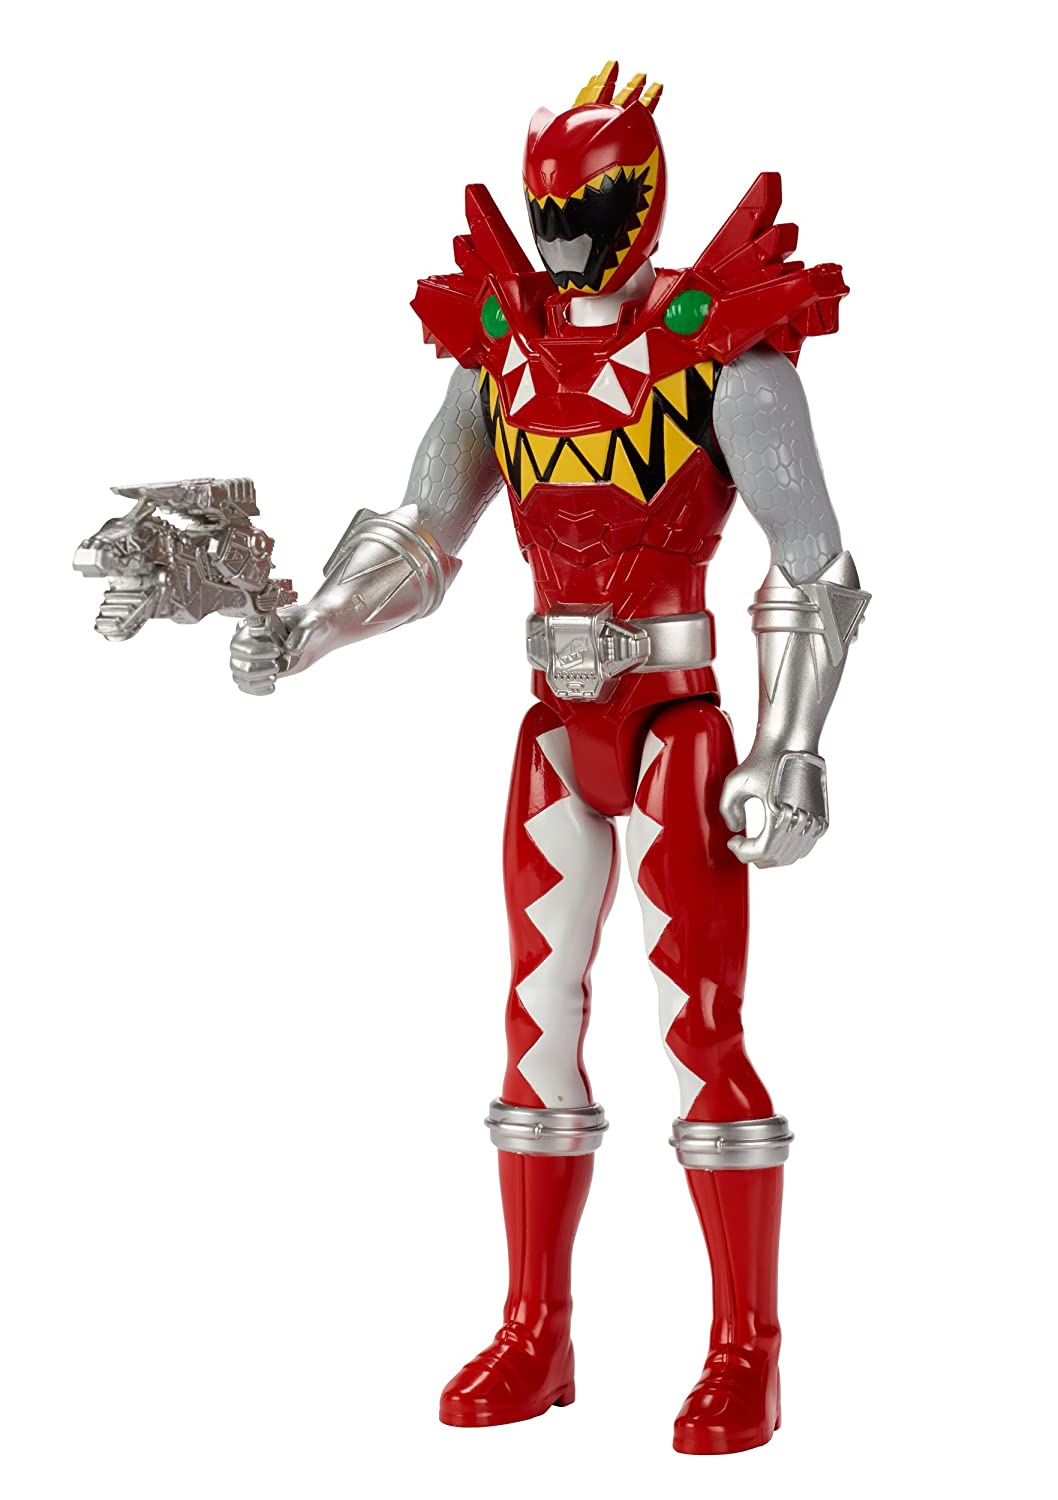 Power Rangers Dino Super carga – 12 T-Rex Super carga Red Ranger Action Figure